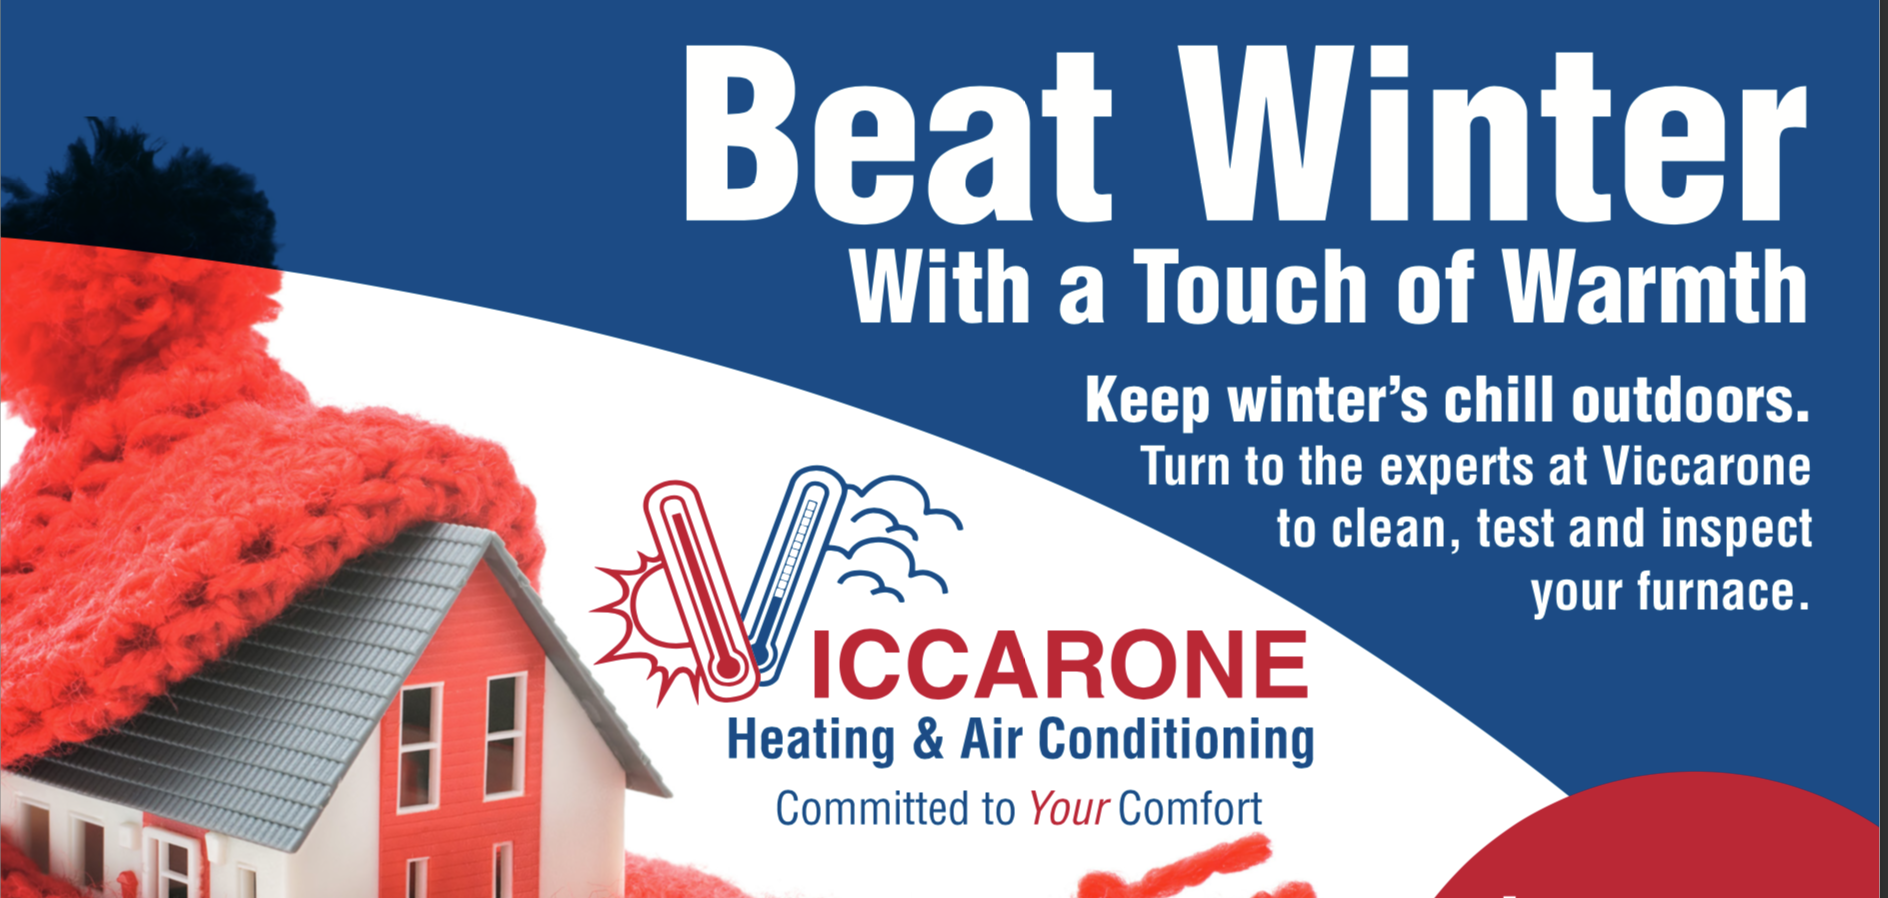 Will Your Furnace Make It Through this Winter